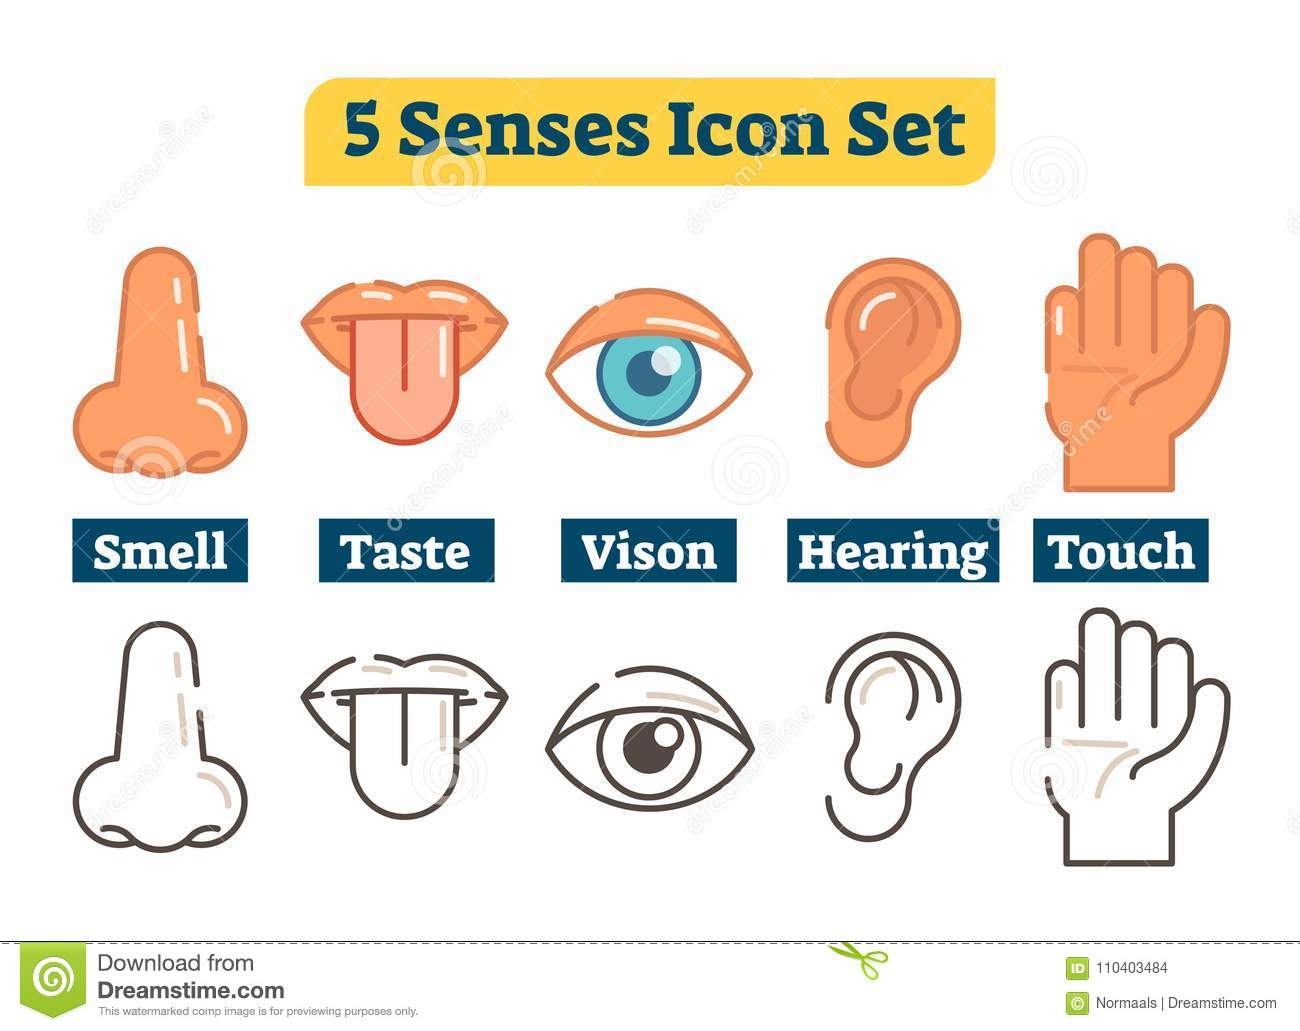 Five human body senses: smell, taste, vision, hearing, touch. Vector flat illustration icons